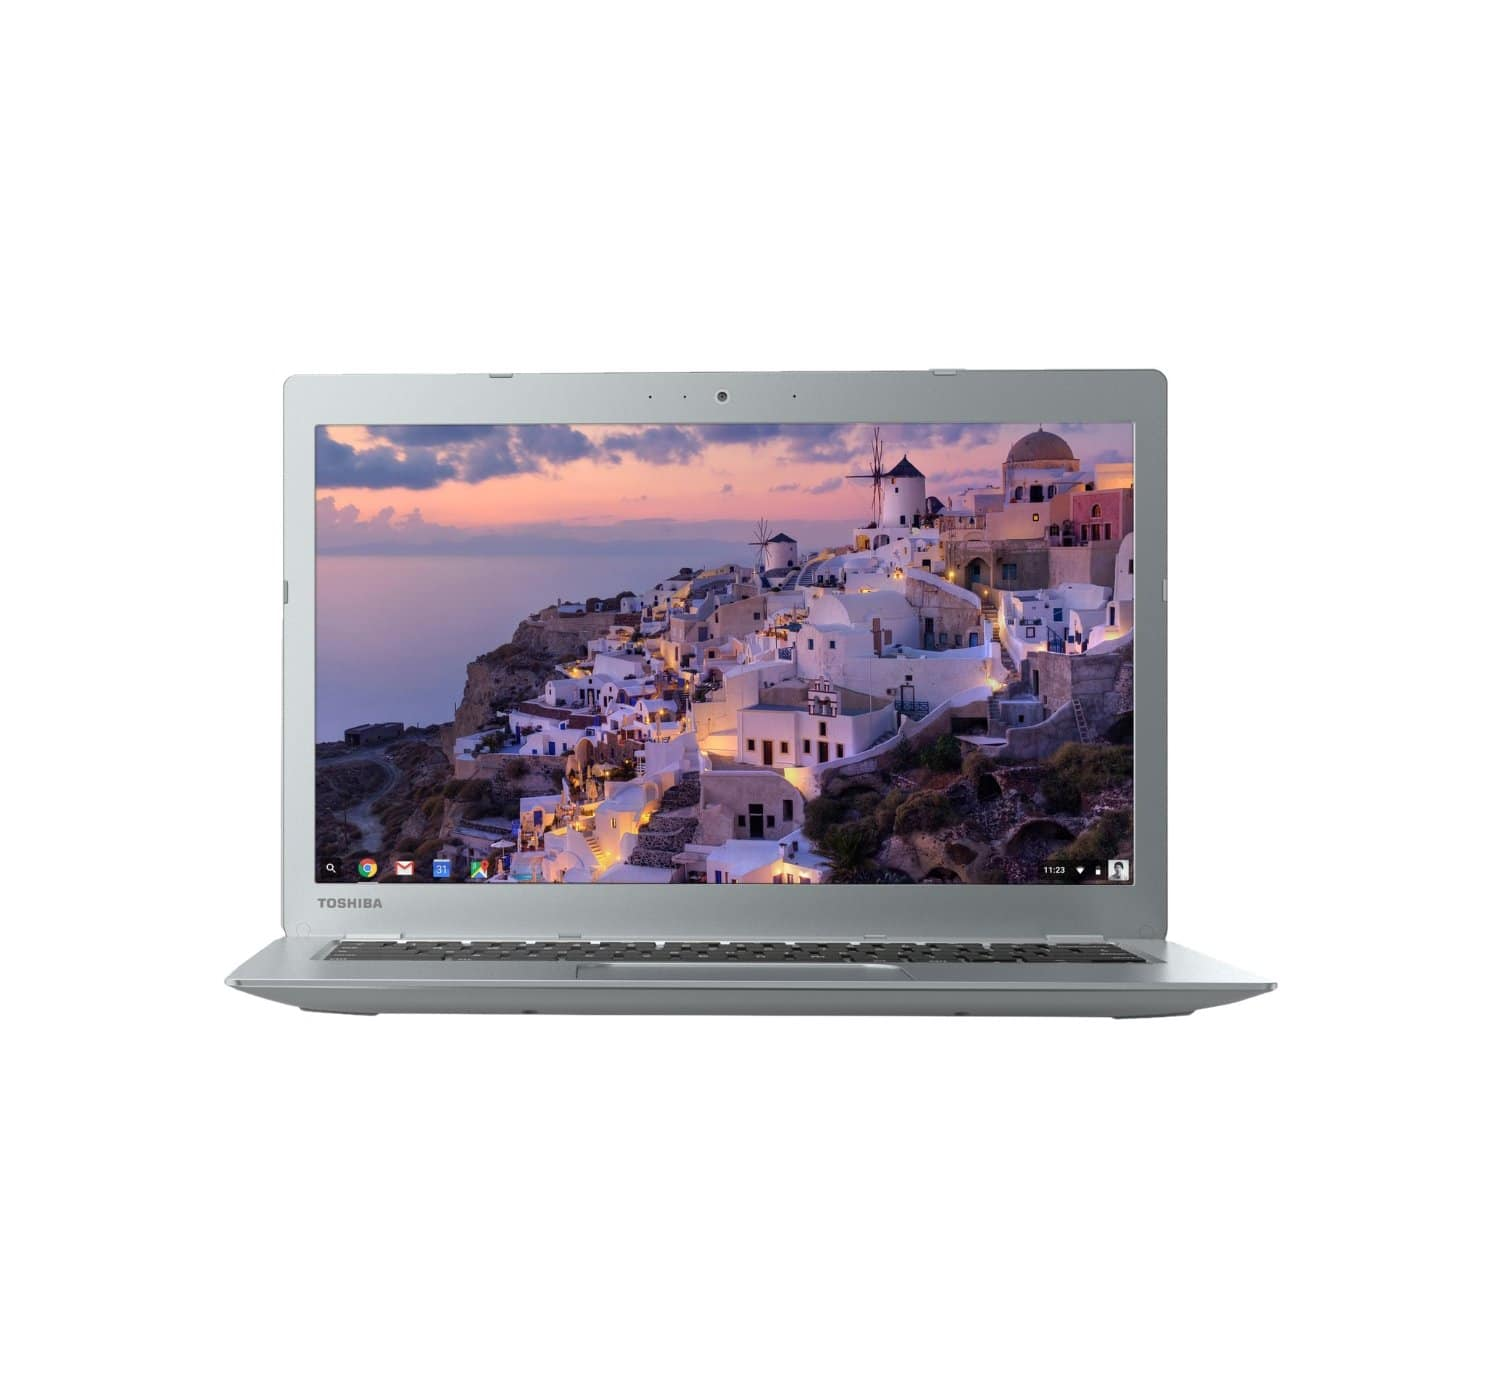 "Toshiba CB35-C3300 Chromebook 2 (2015): 13.3"" 1080p IPS, 4GB RAM, 16GB eMMC, Intel 3215U - $299+FS @ Amazon"